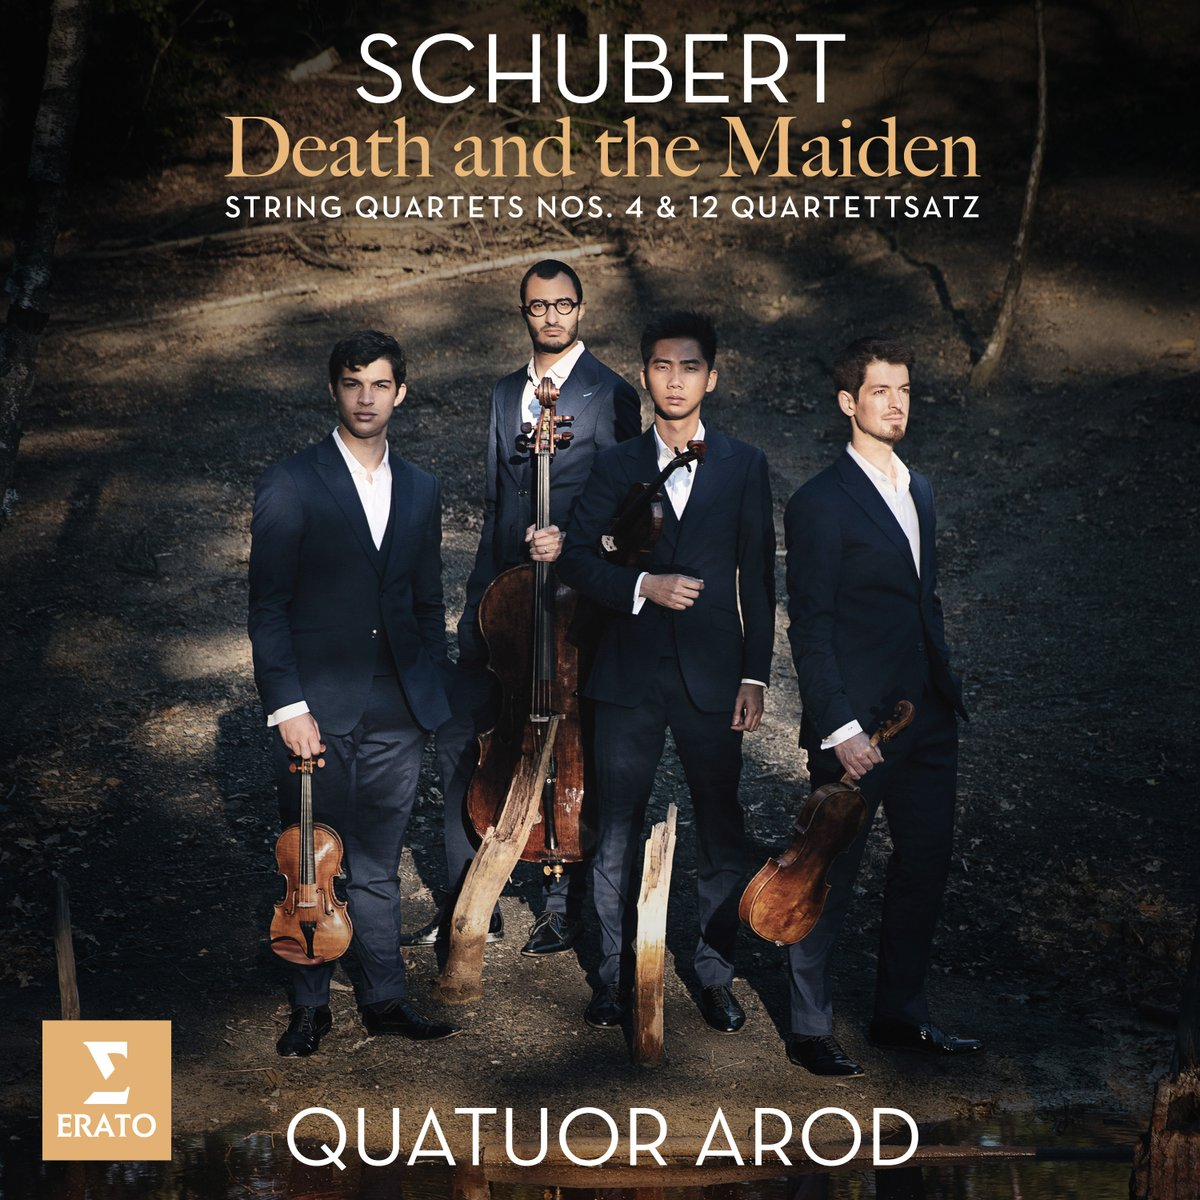 """The second movement of Schubert's """"Death and the Maiden"""" string quartet opens with a somber theme, a death march, which then expands into several variations.  Listen to the @Quatuor_Arod's skilled interpretation, featured on their upcoming Schubert album: https://t.co/5IvDYjRDRa https://t.co/cExGRwdm2q"""